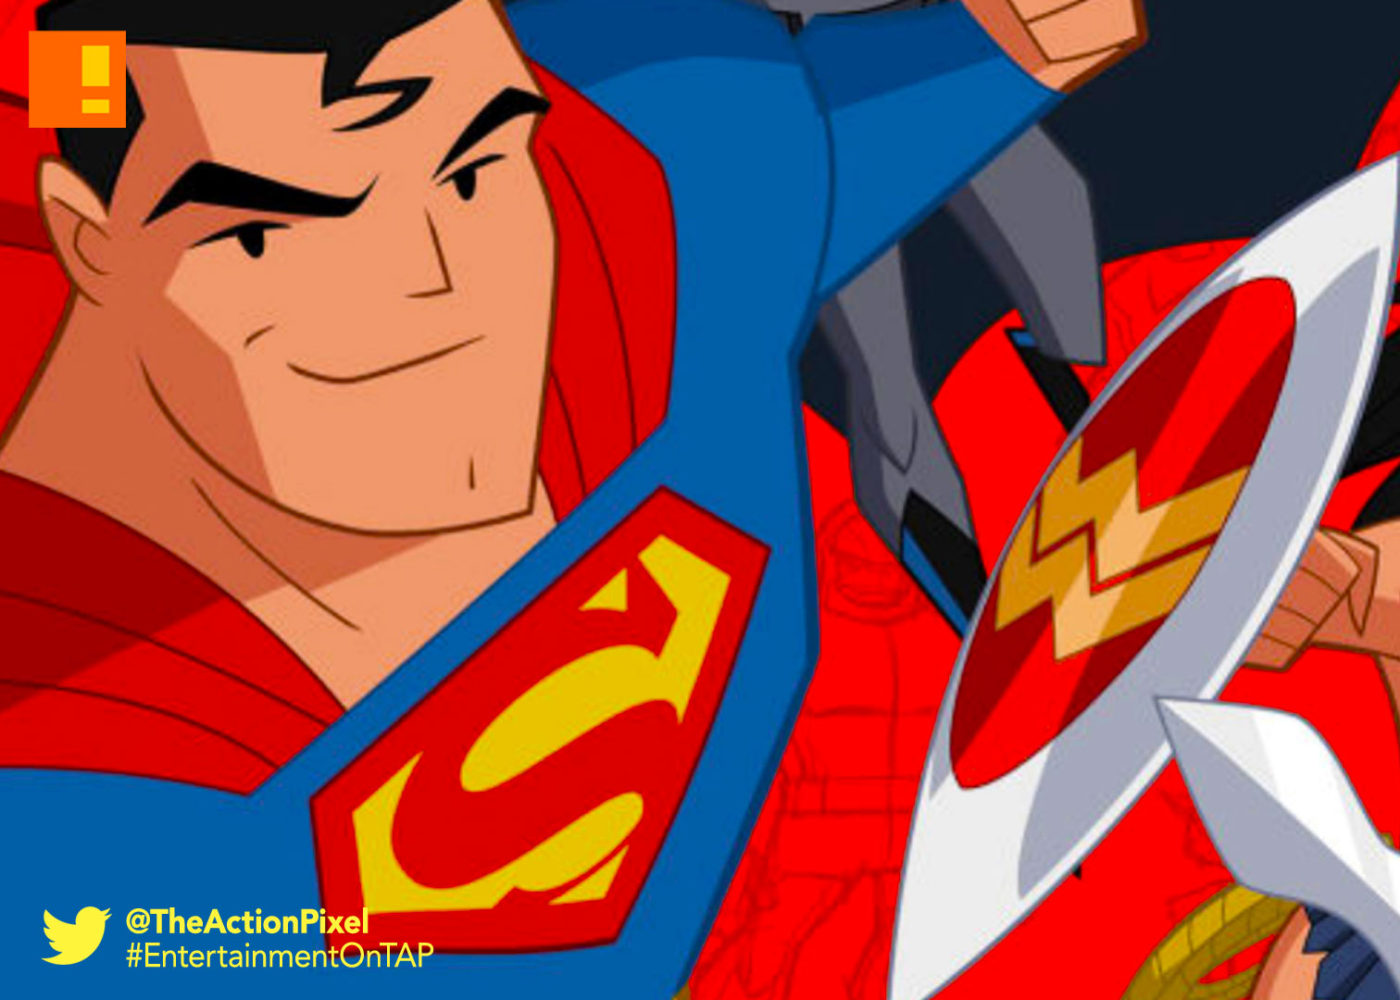 justice league action, justice league, warner bros. , wb animation, cartoon network, the action pixel, entertainment on tap, superman, batman, wonder woman, dc comics,